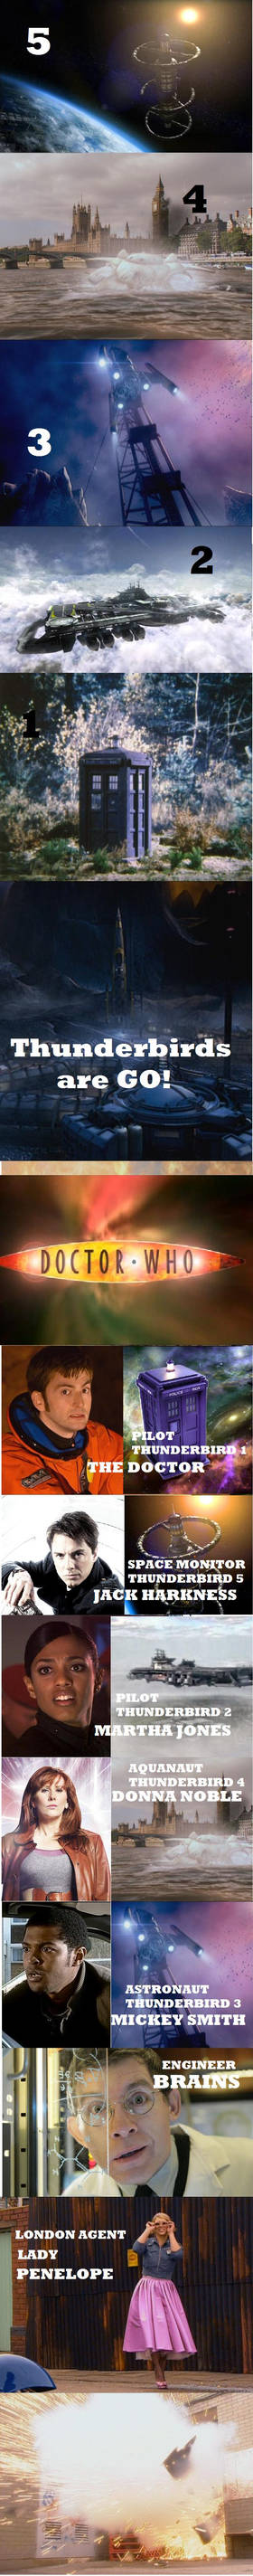 Doctor Who is GO